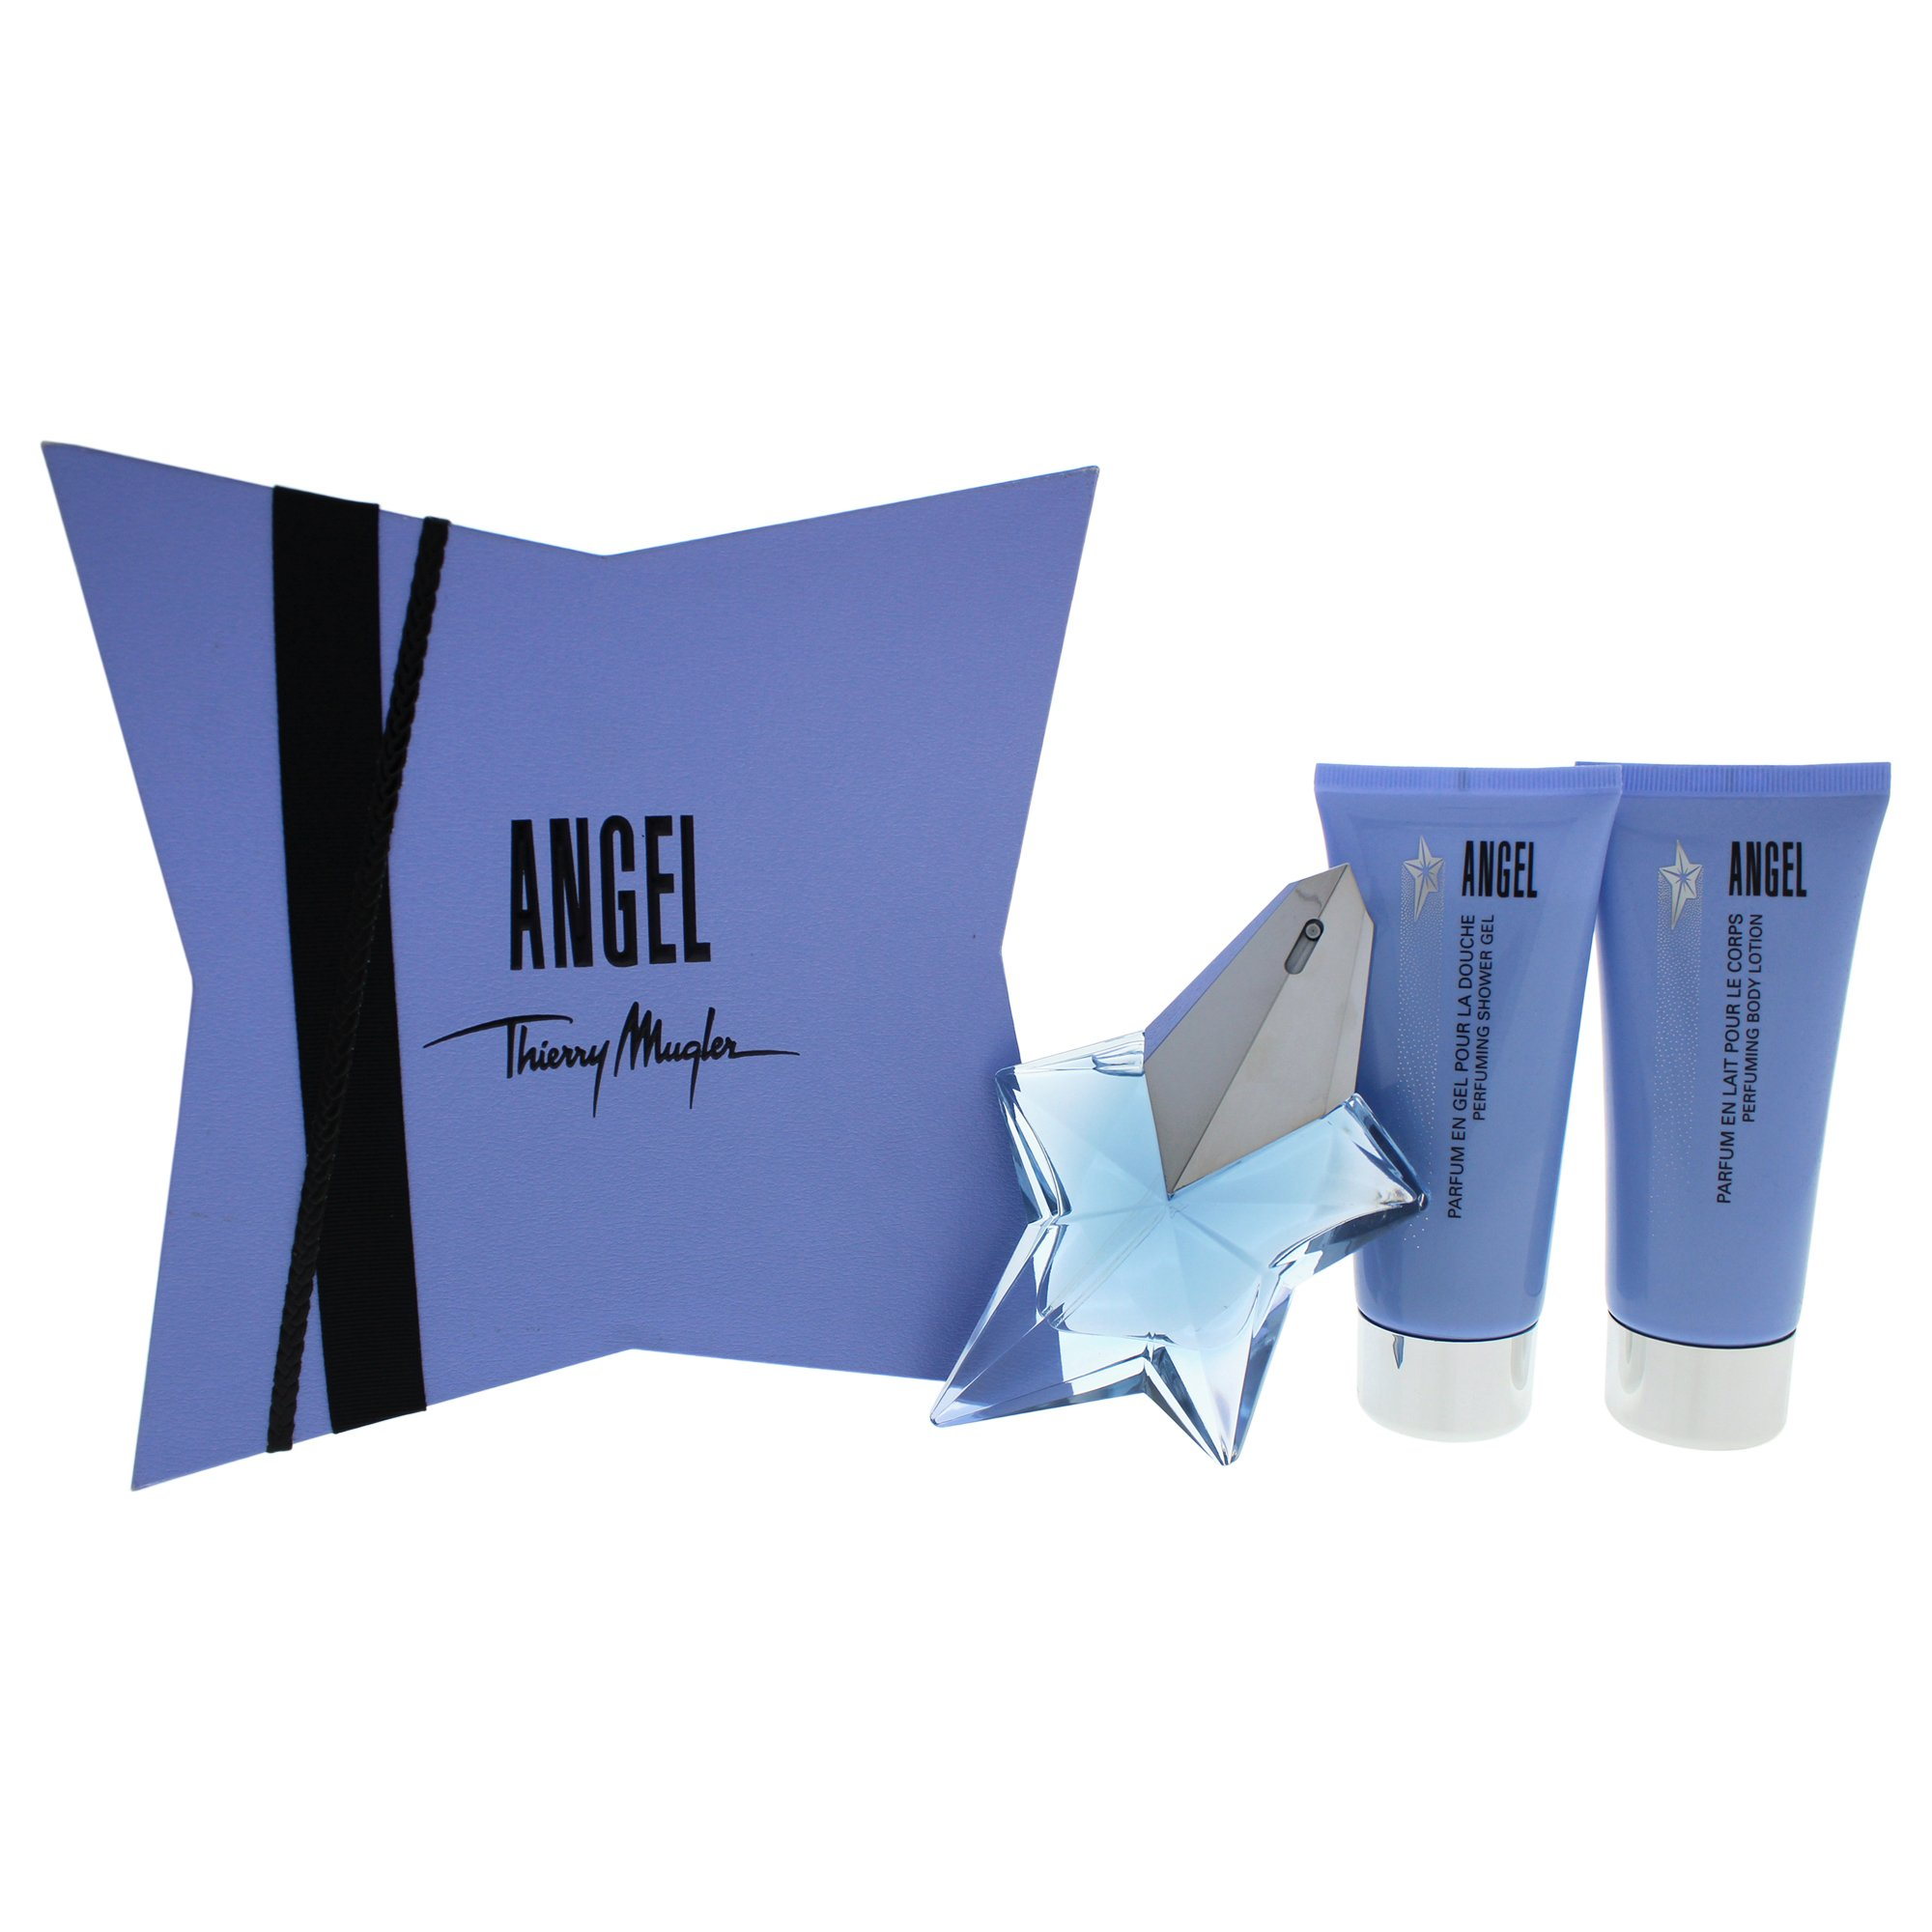 Angel by Thierry Mugler 3 Piece Set for Women